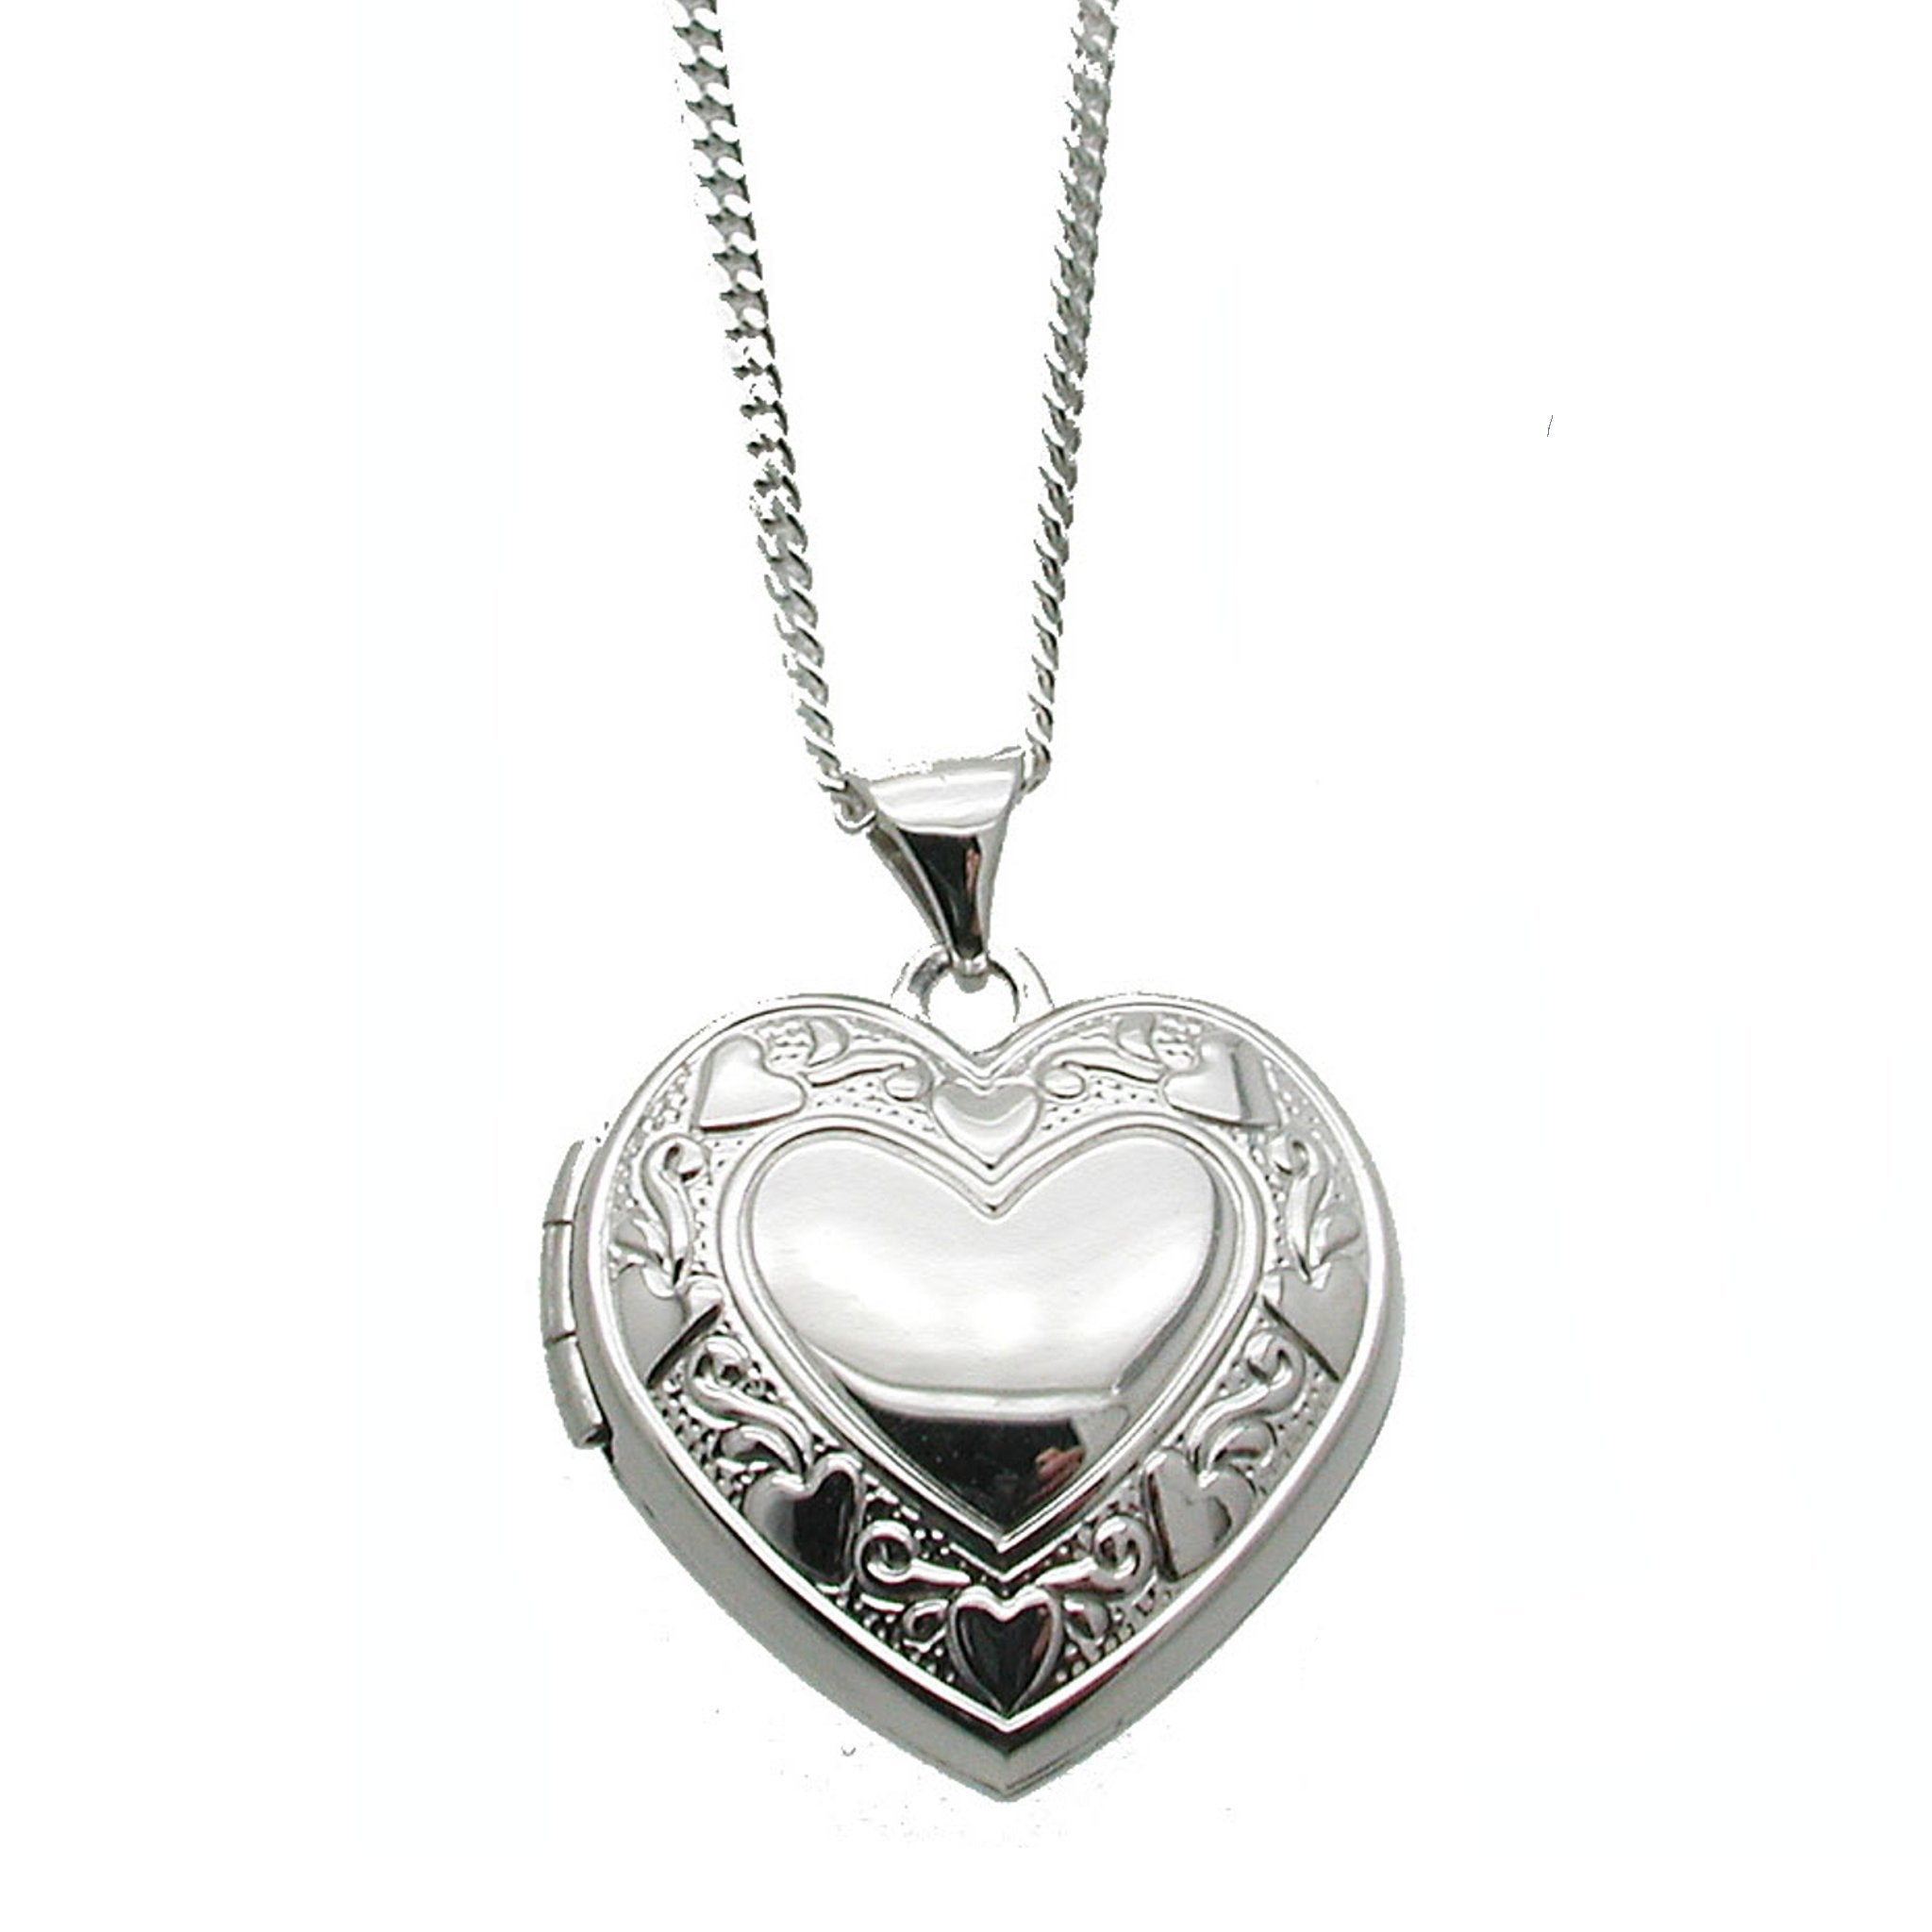 My Sweet Heart Locket Necklace